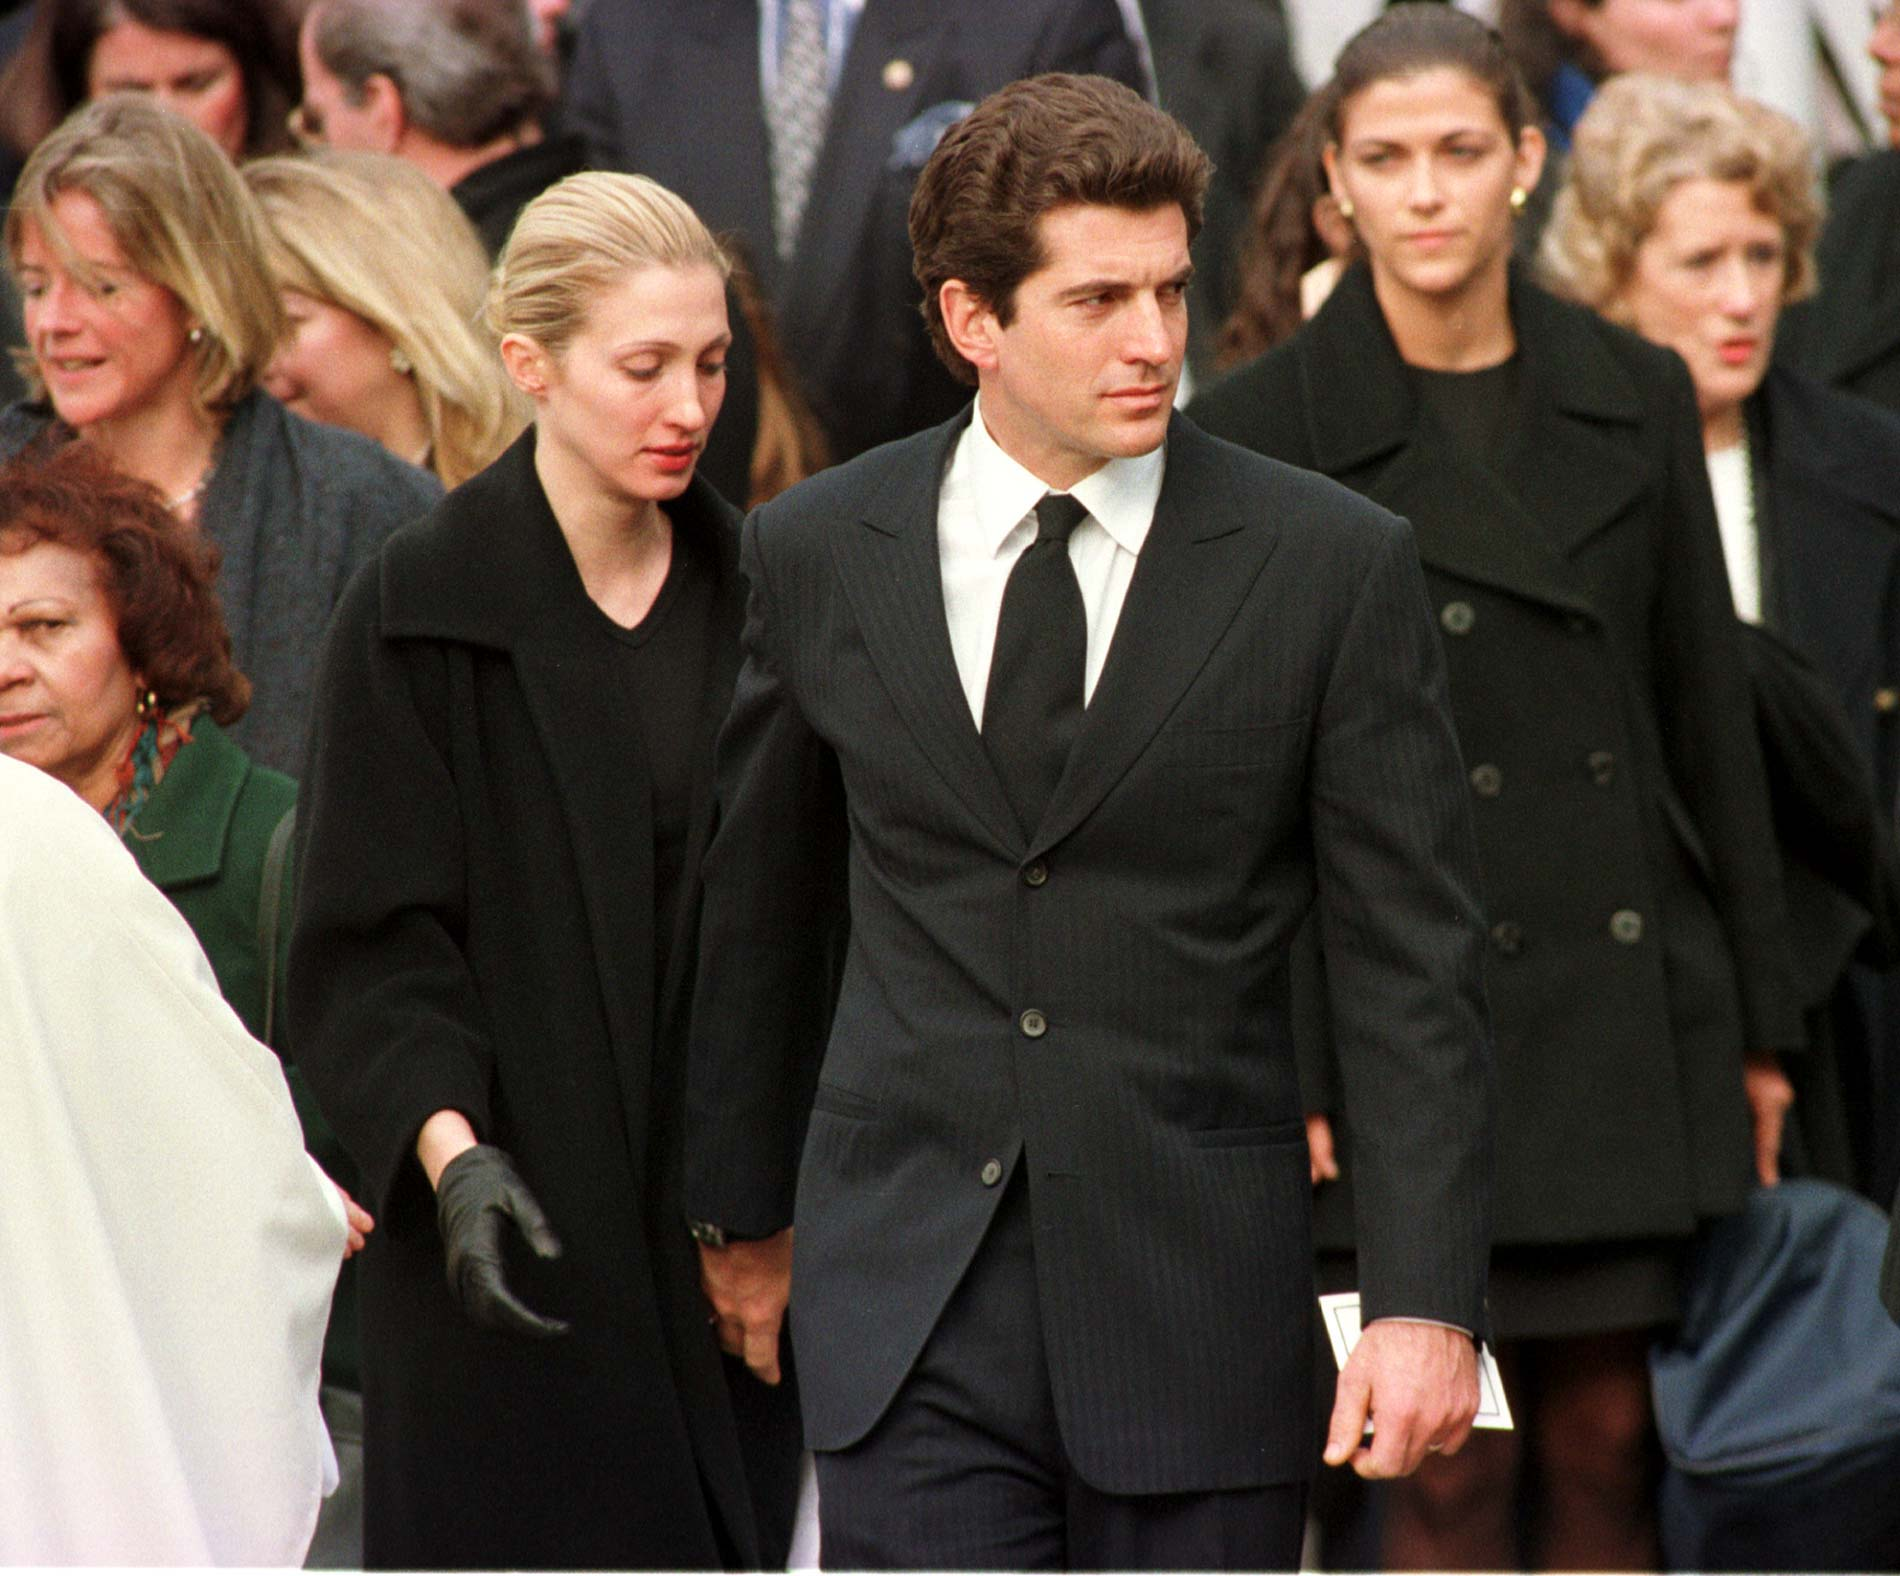 John F. Kennedy Jr. with his wife Carolyn after Michael Kennedy's funeral in 1998. | Source: Getty Images